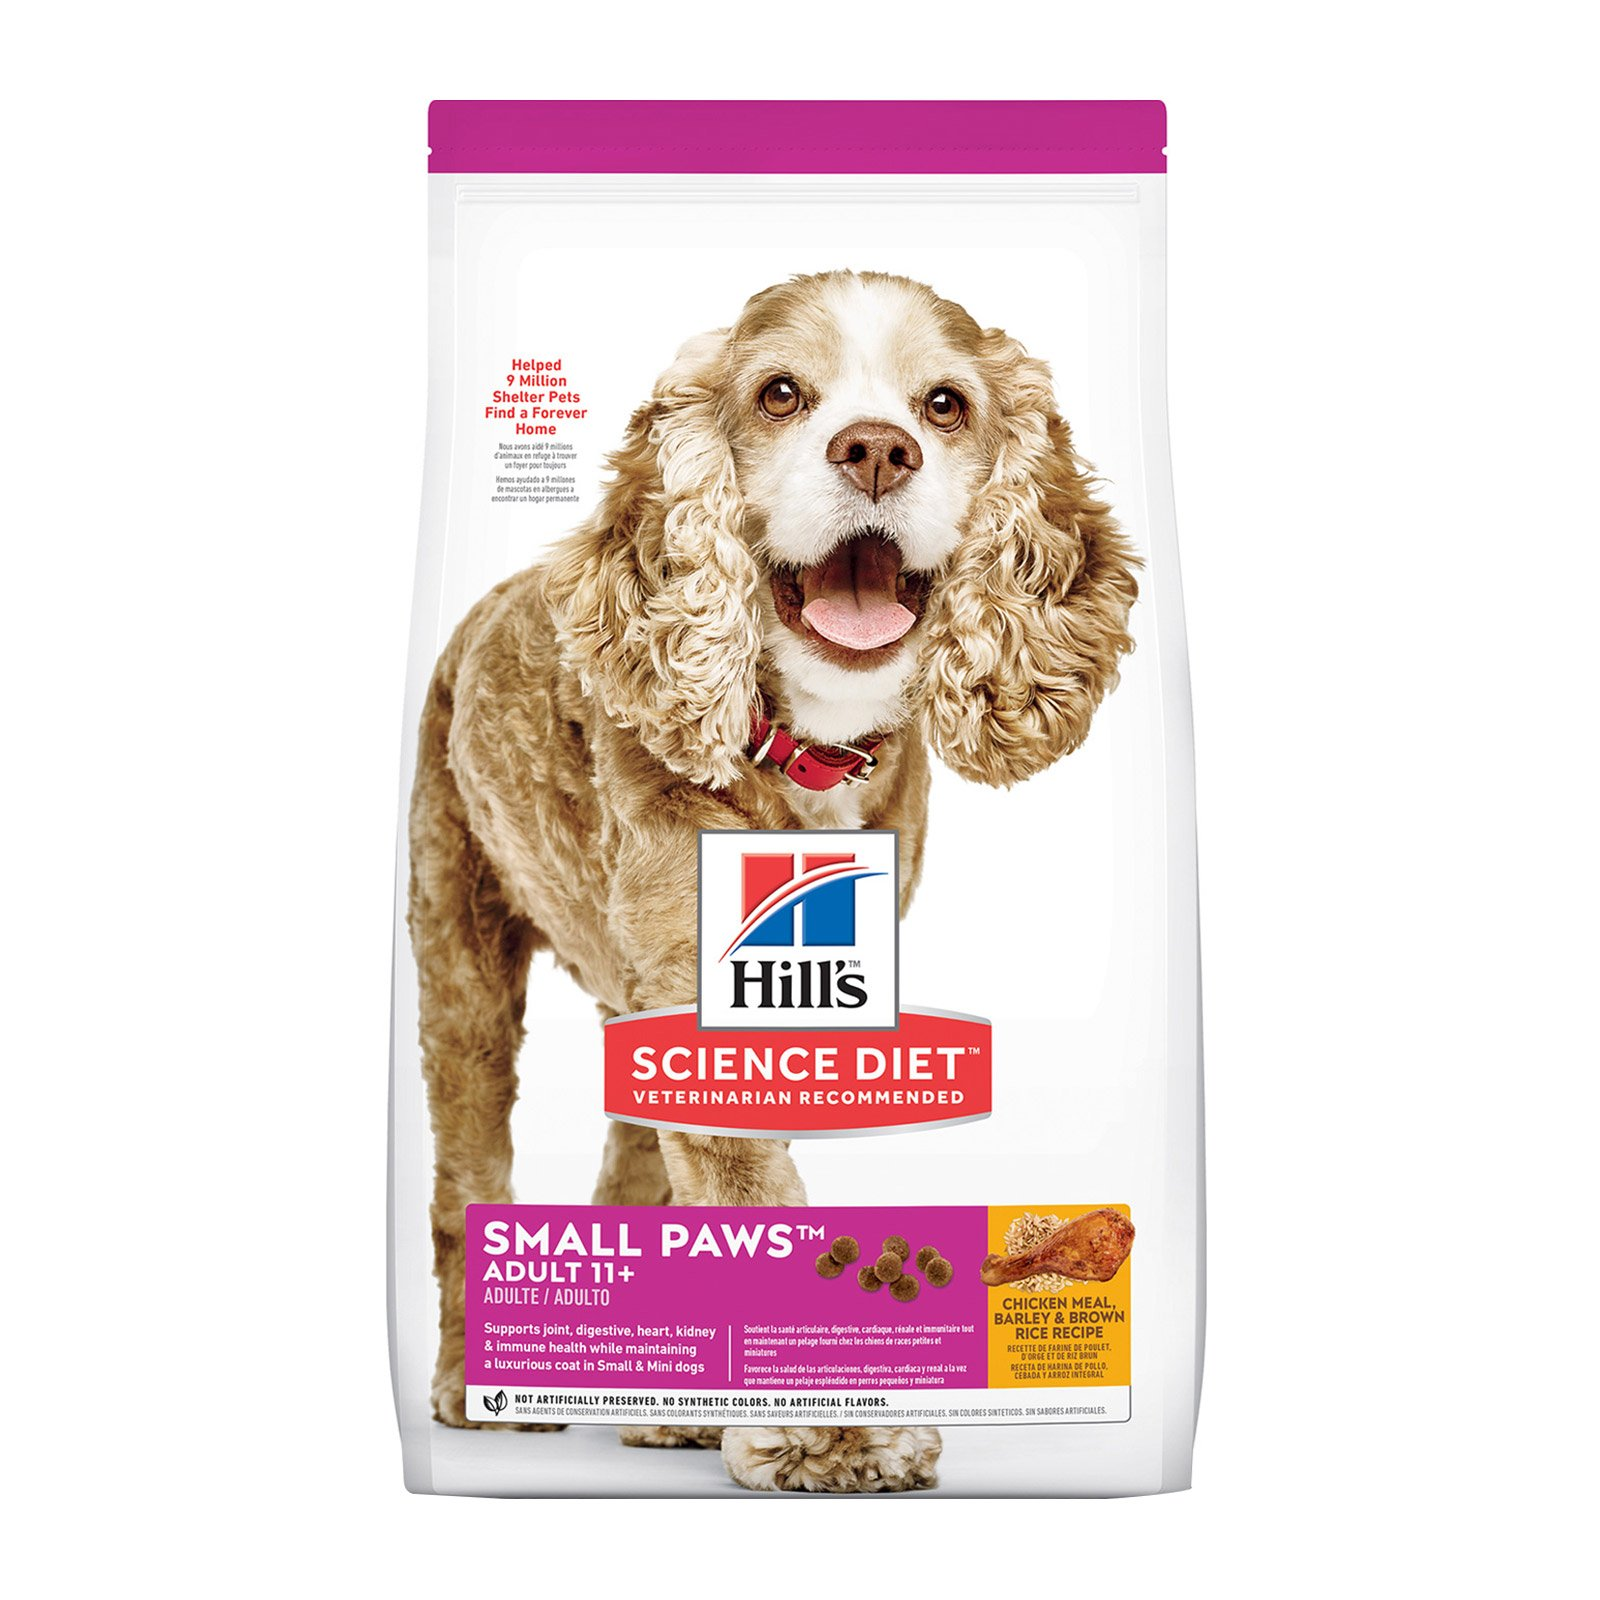 Hill's Science Diet Adult 11+ Small Paws Chicken, Barley & Rice Dry Dog Food